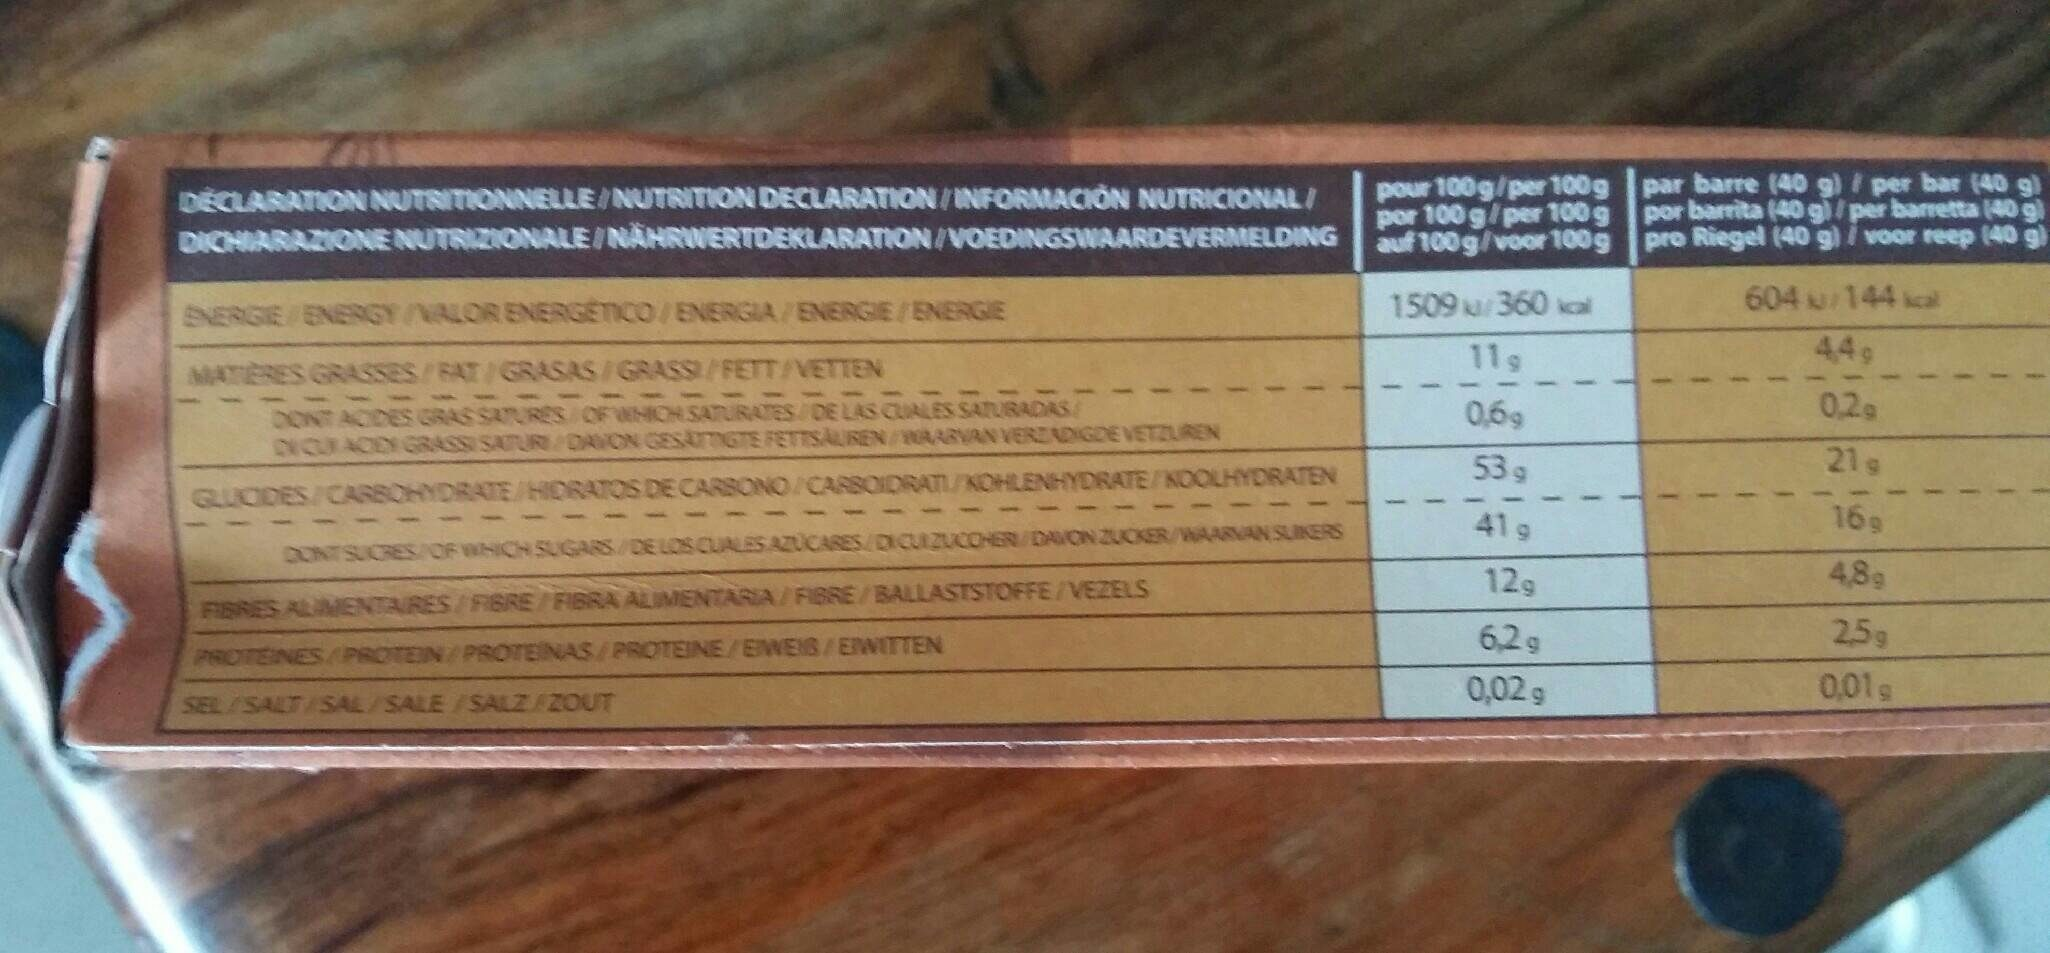 CRO paléontologie bar - Nutrition facts